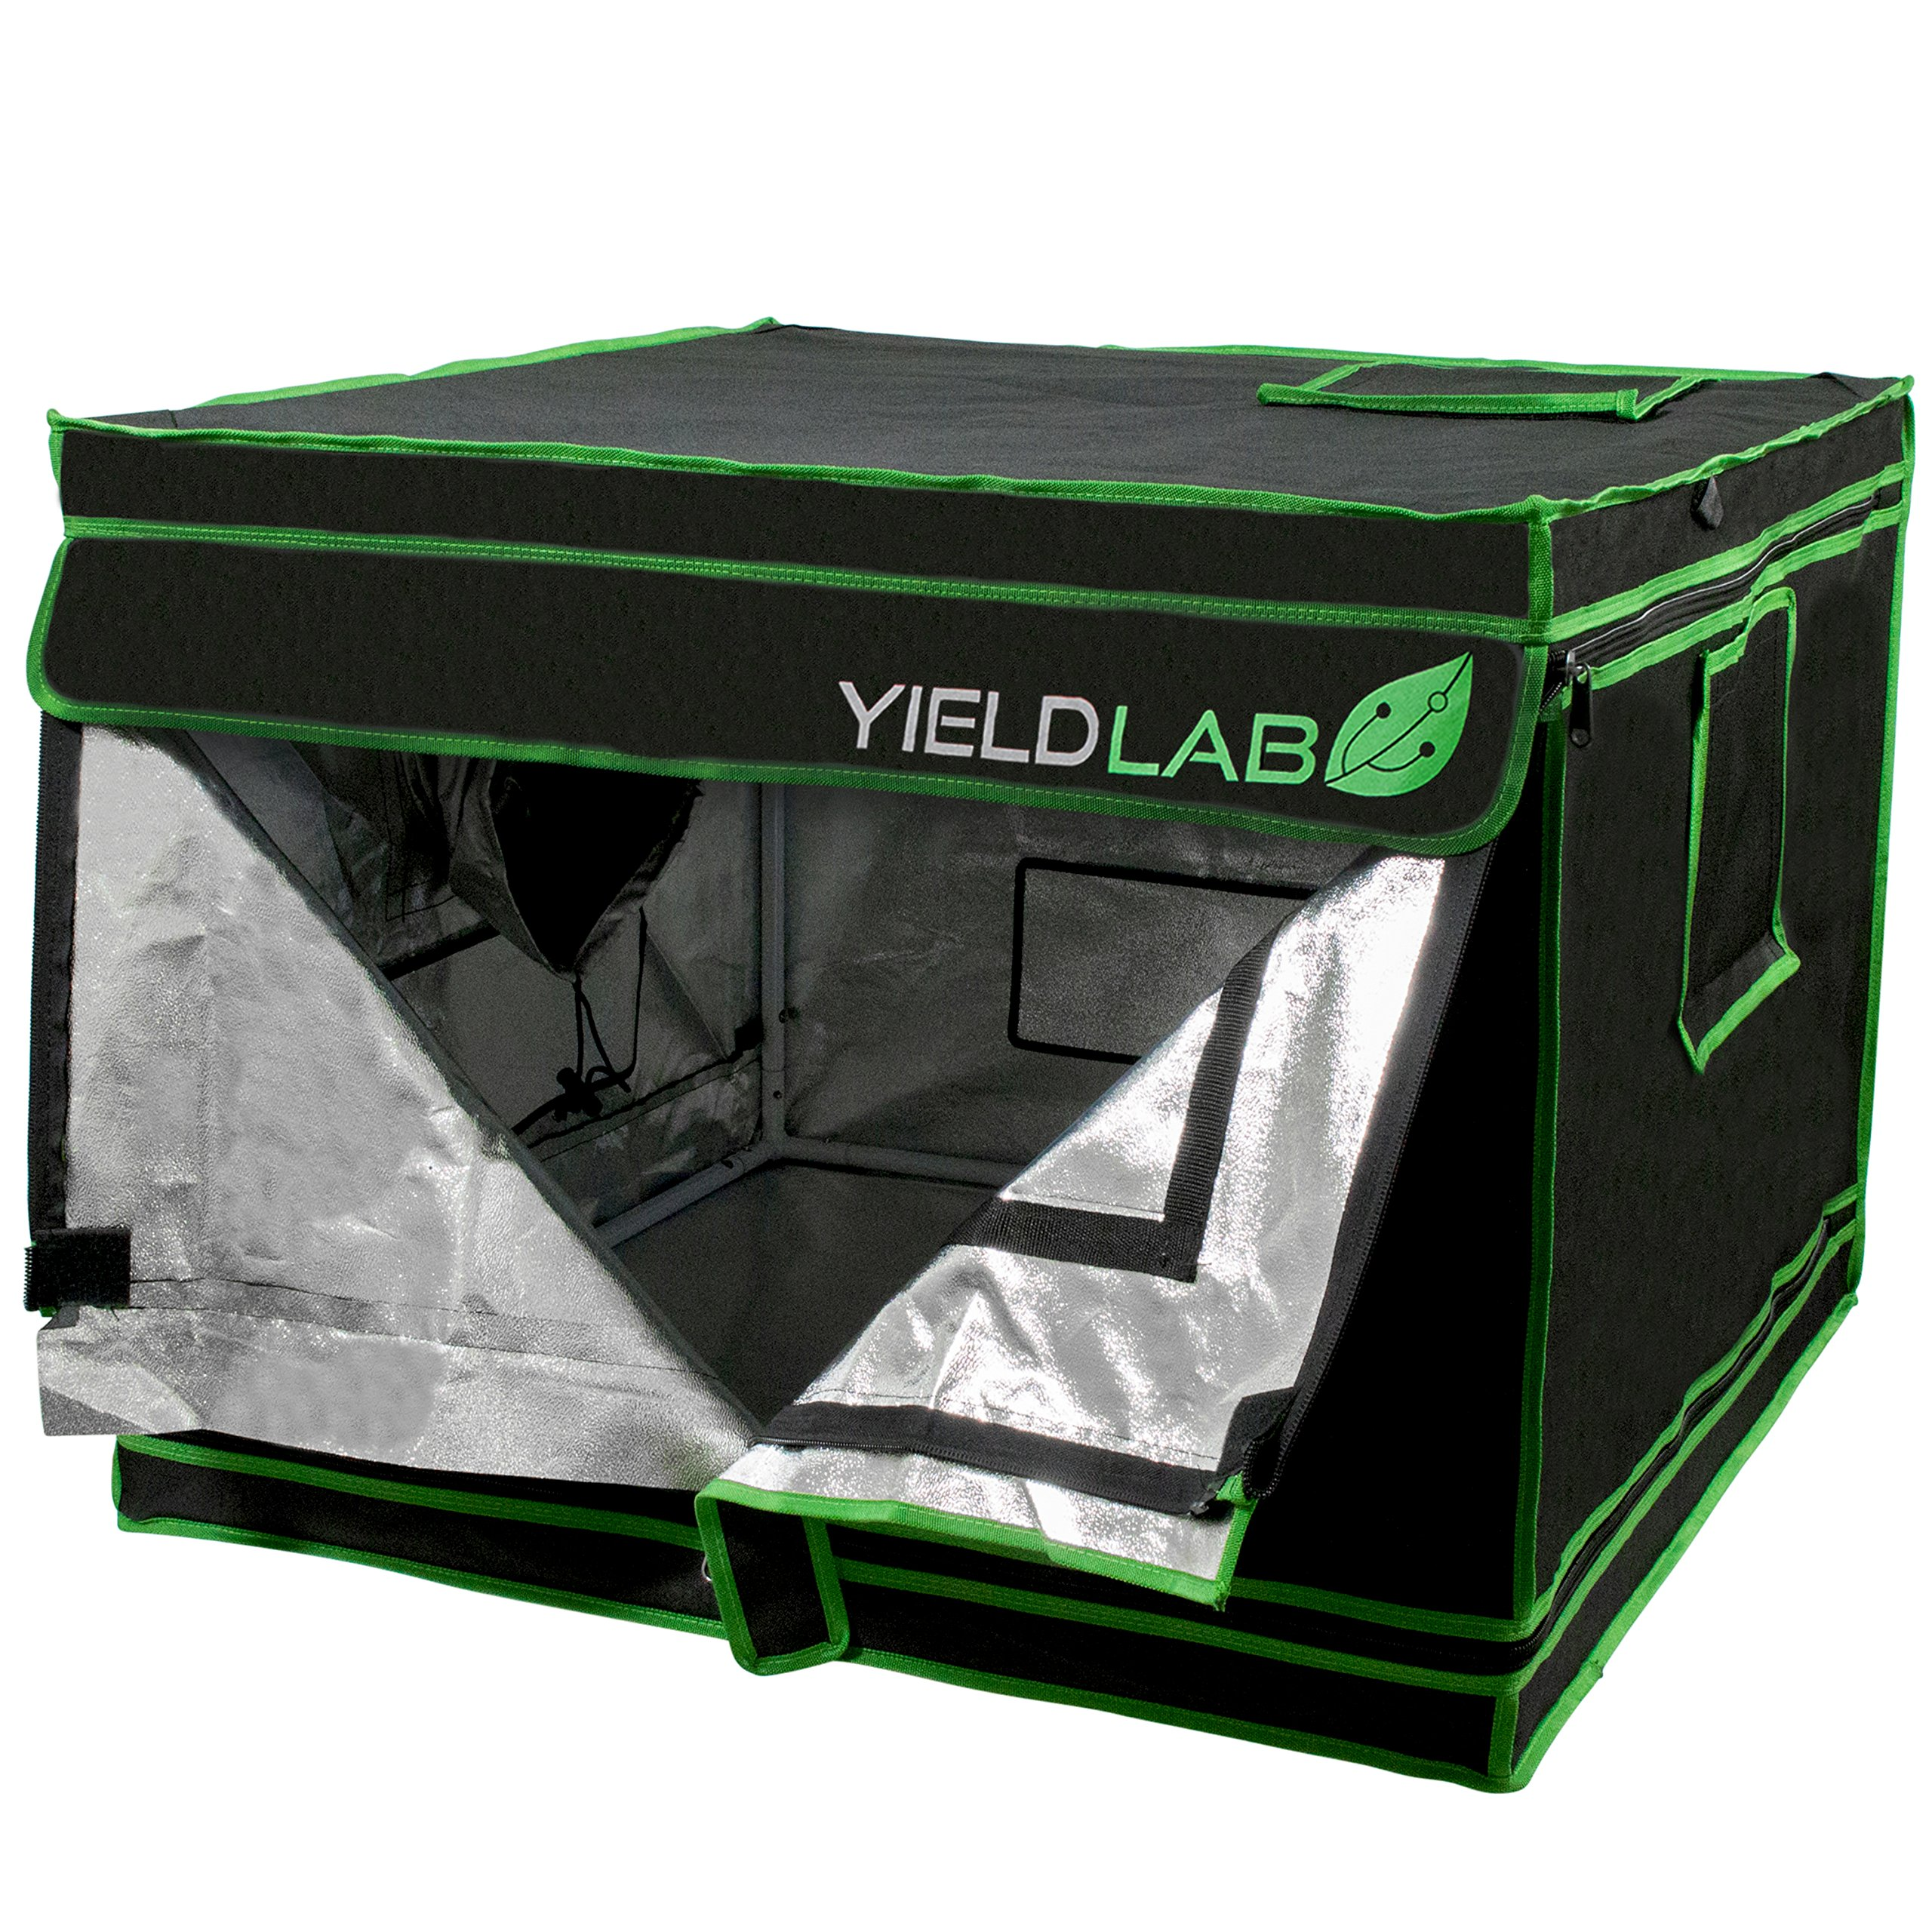 Yield Lab 32'' x 32'' x 24'' Grow Tent with Viewing Window – For Indoor, LED, T5, CFL, HPS, CMH – Hydroponic, Aeroponic, Horticulture Growing Equipment